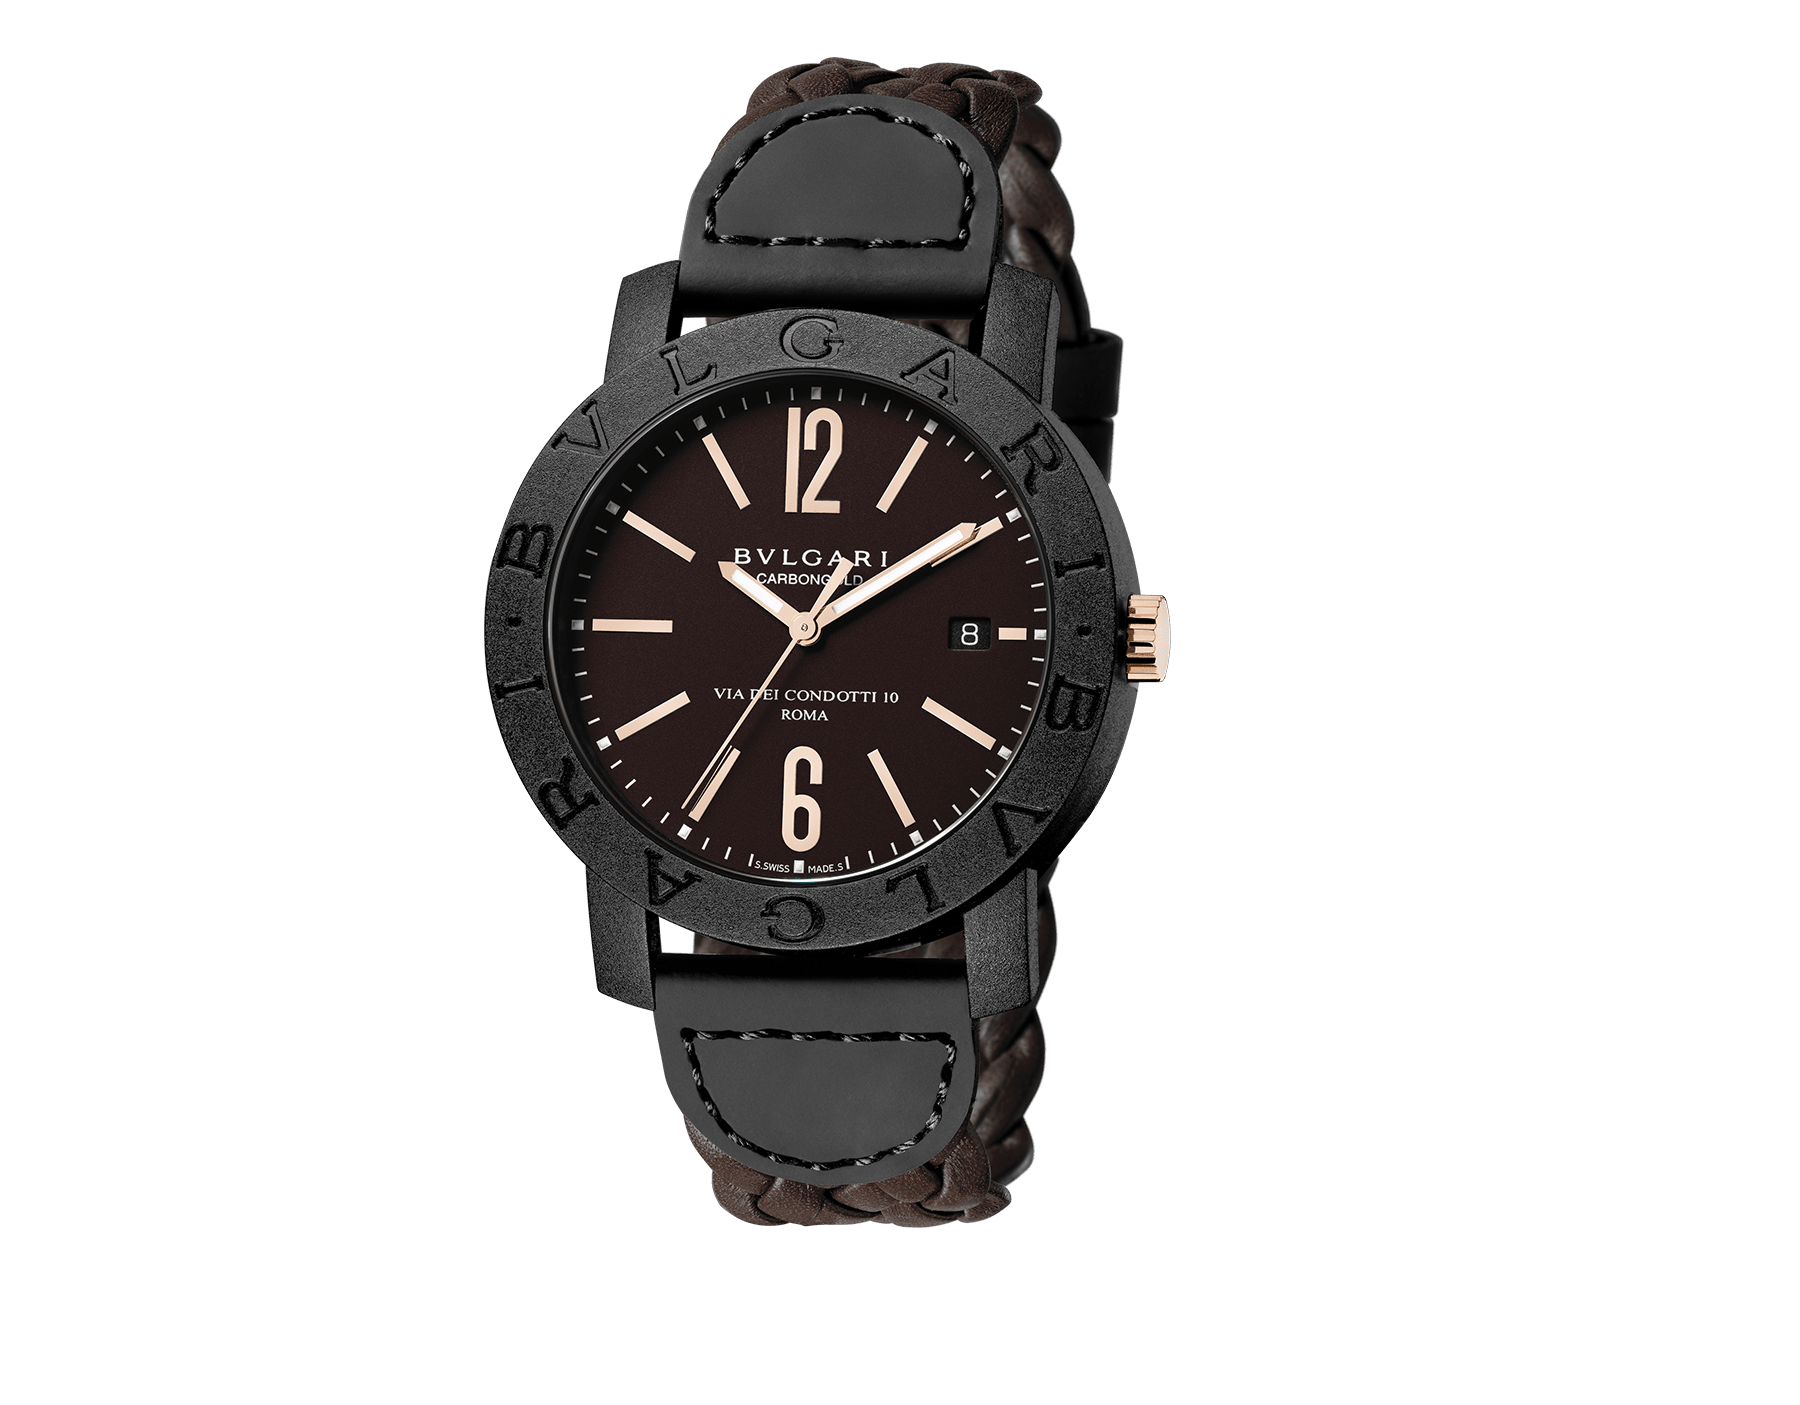 BVLGARI BVLGARI CARBON GOLD watch with mechanical movement, automatic winding and date, carbon gold case, brown dial and woven leather bracelet 102633 image 1